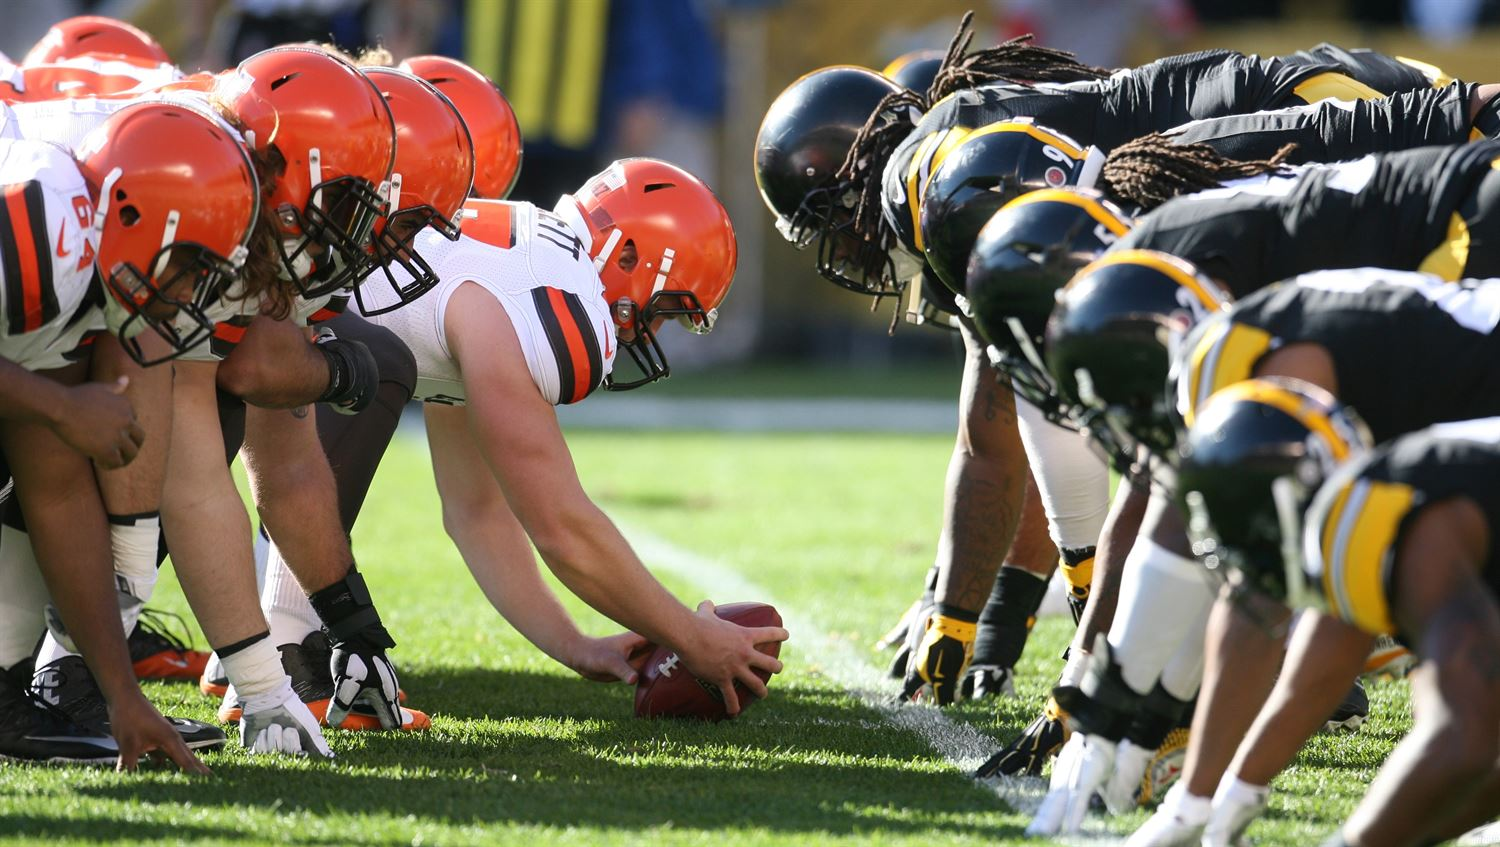 Cleveland Browns - Cleveland Browns Youth Football